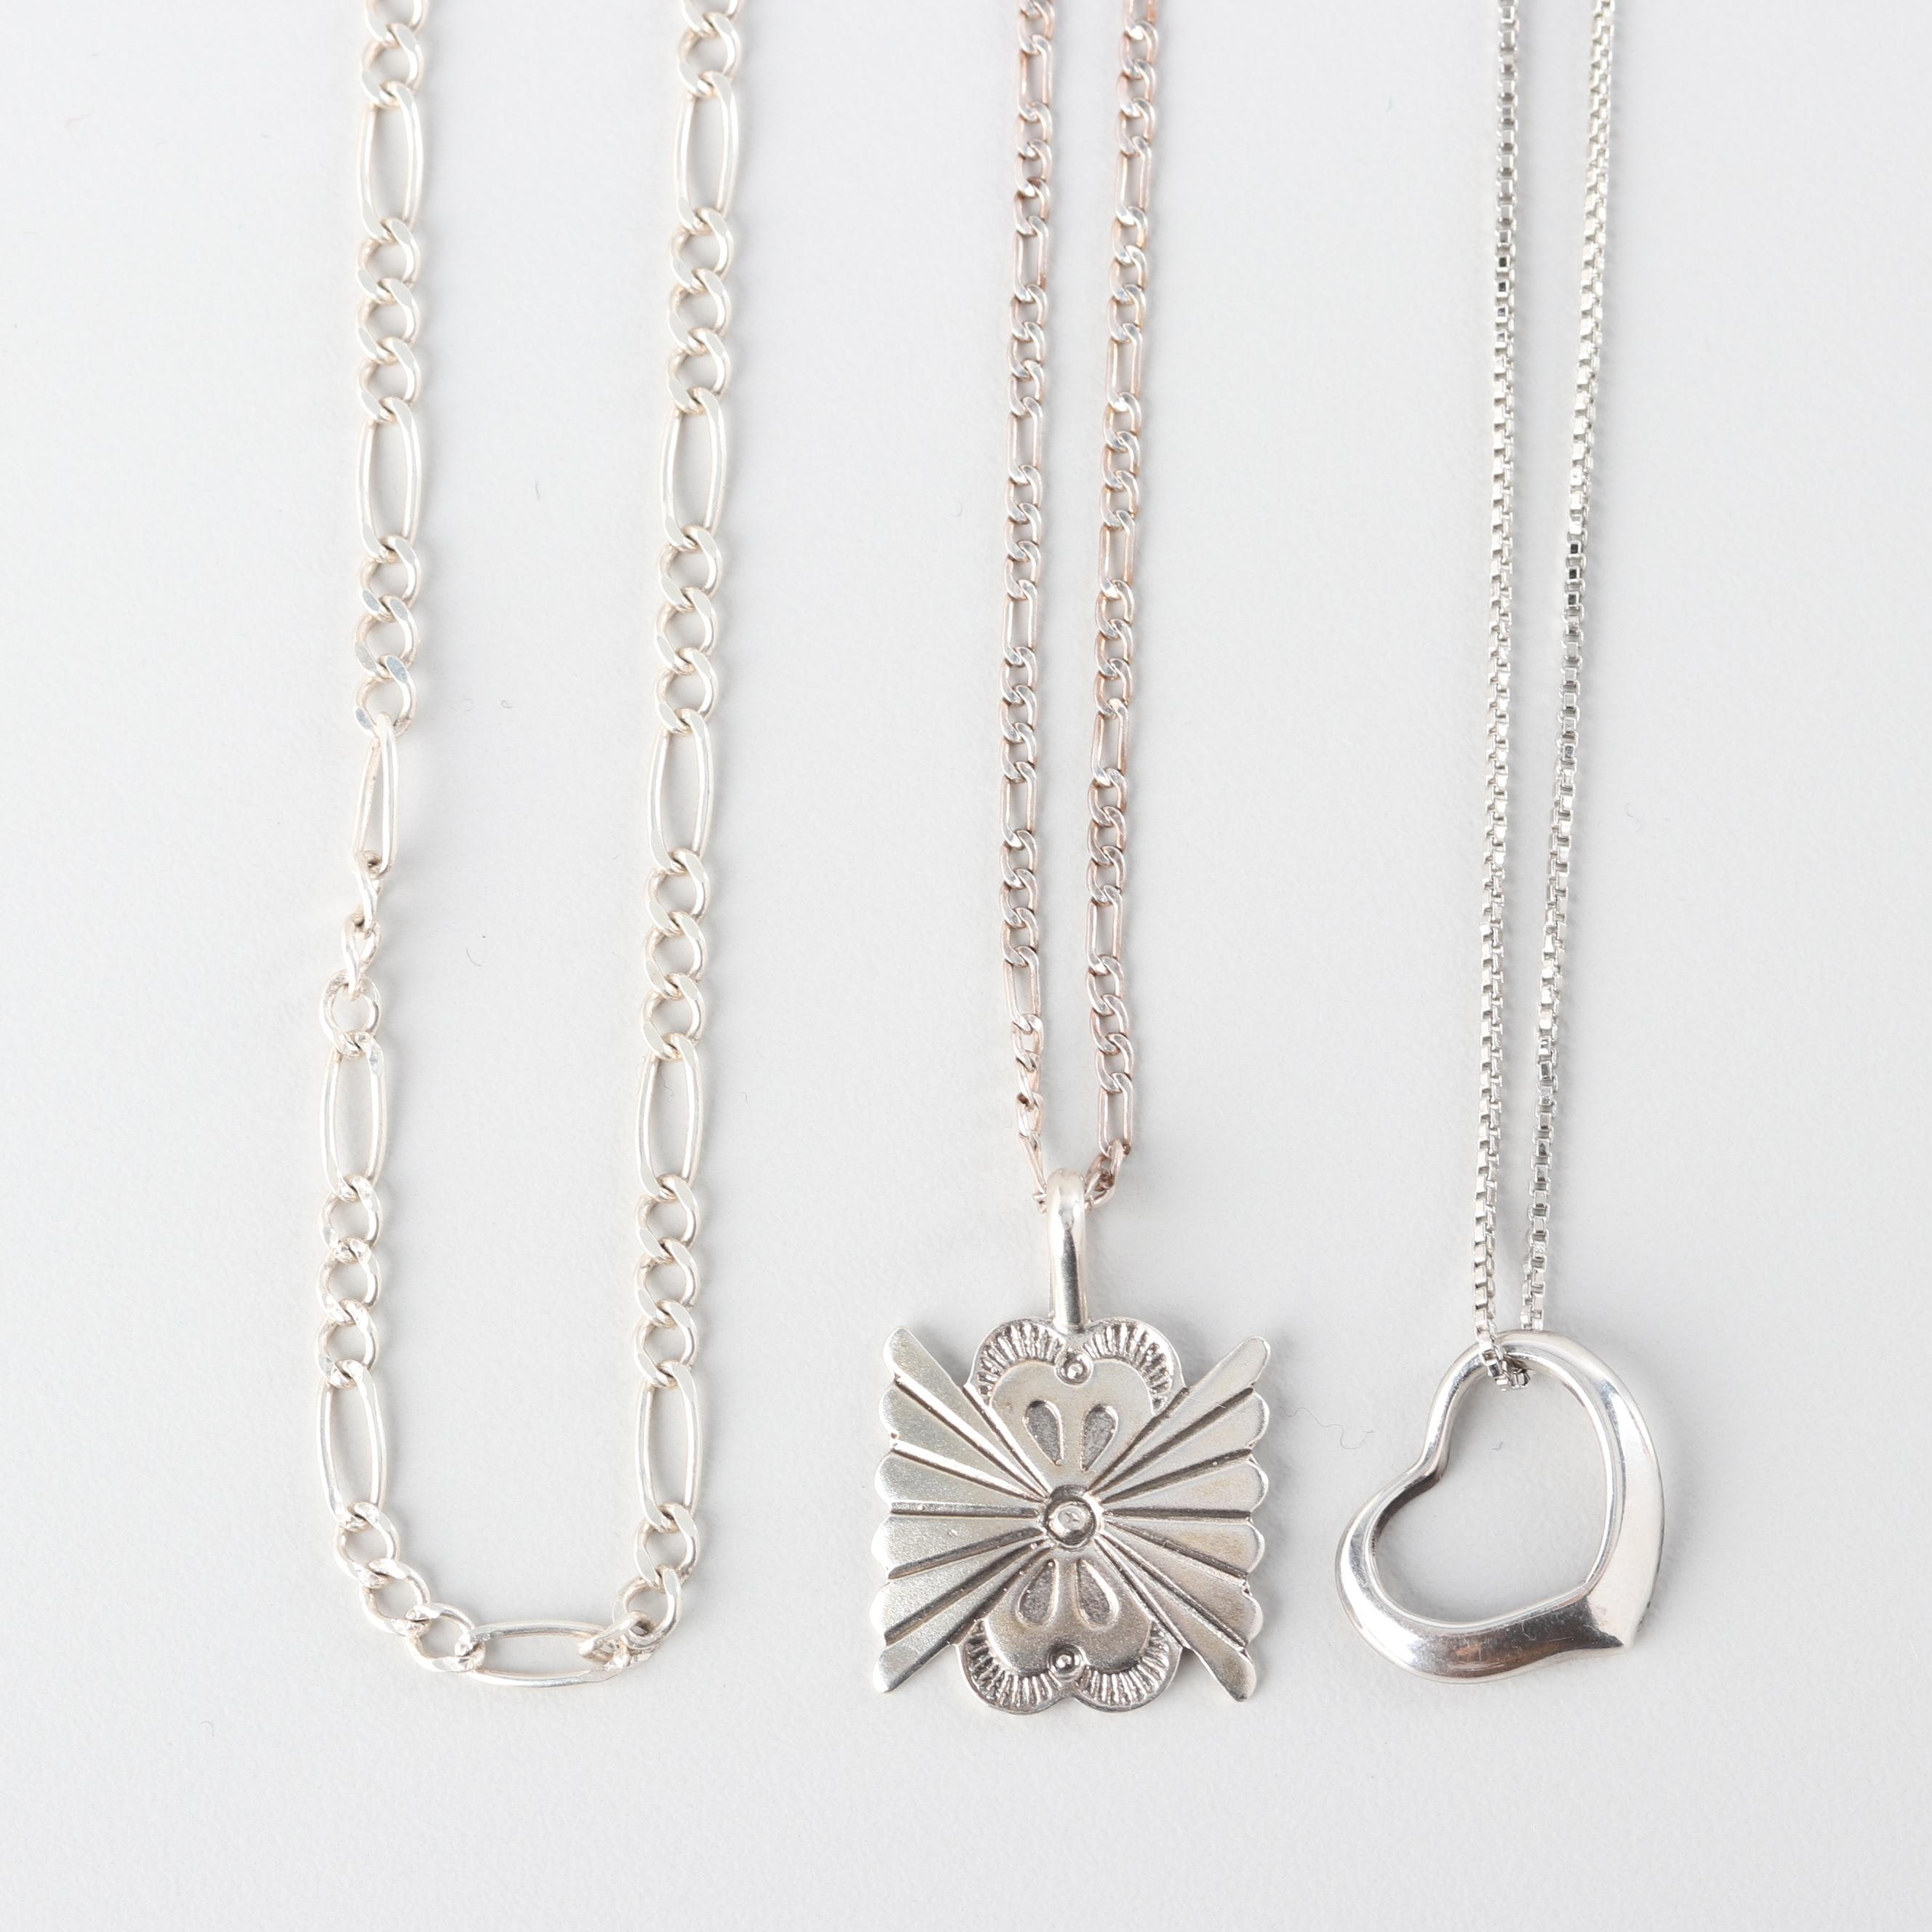 Sterling Silver Pendant Necklaces and Chains